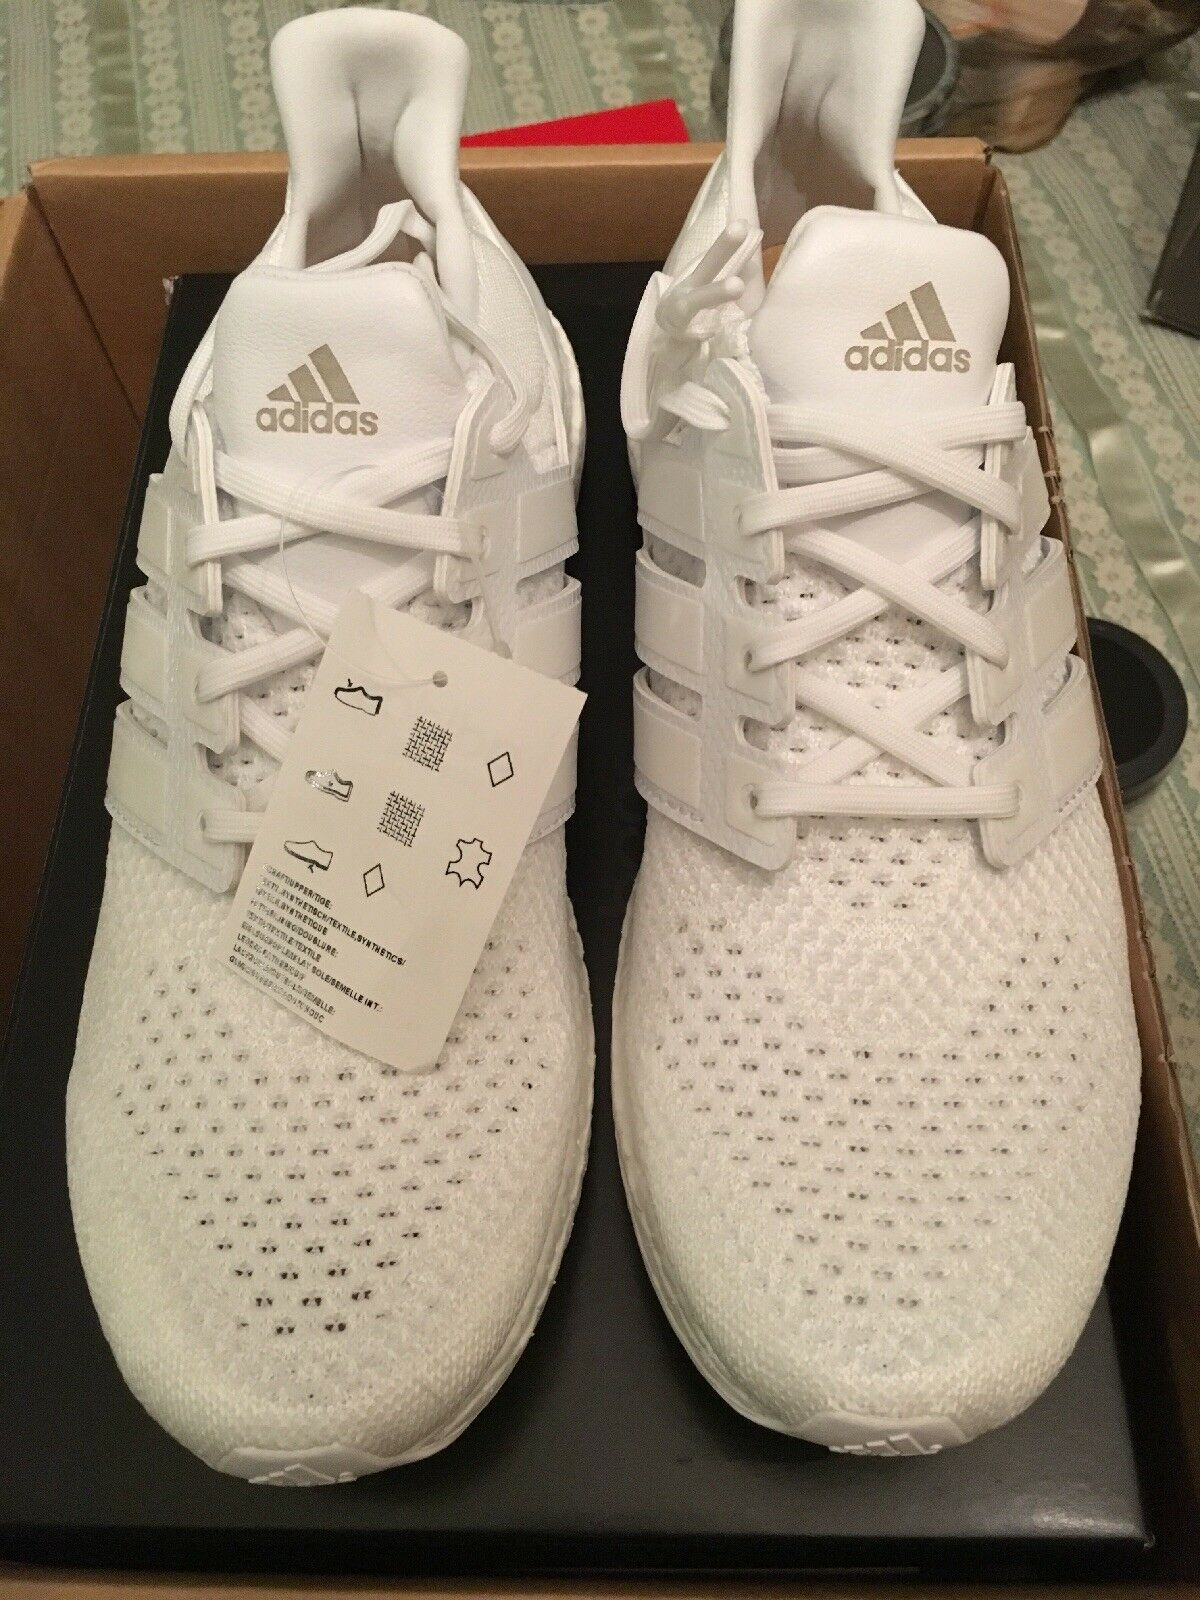 Adidas Ultra Boost Collective J&D Triple White AF5826 Size 11.5 BRAND NEW IN BOX